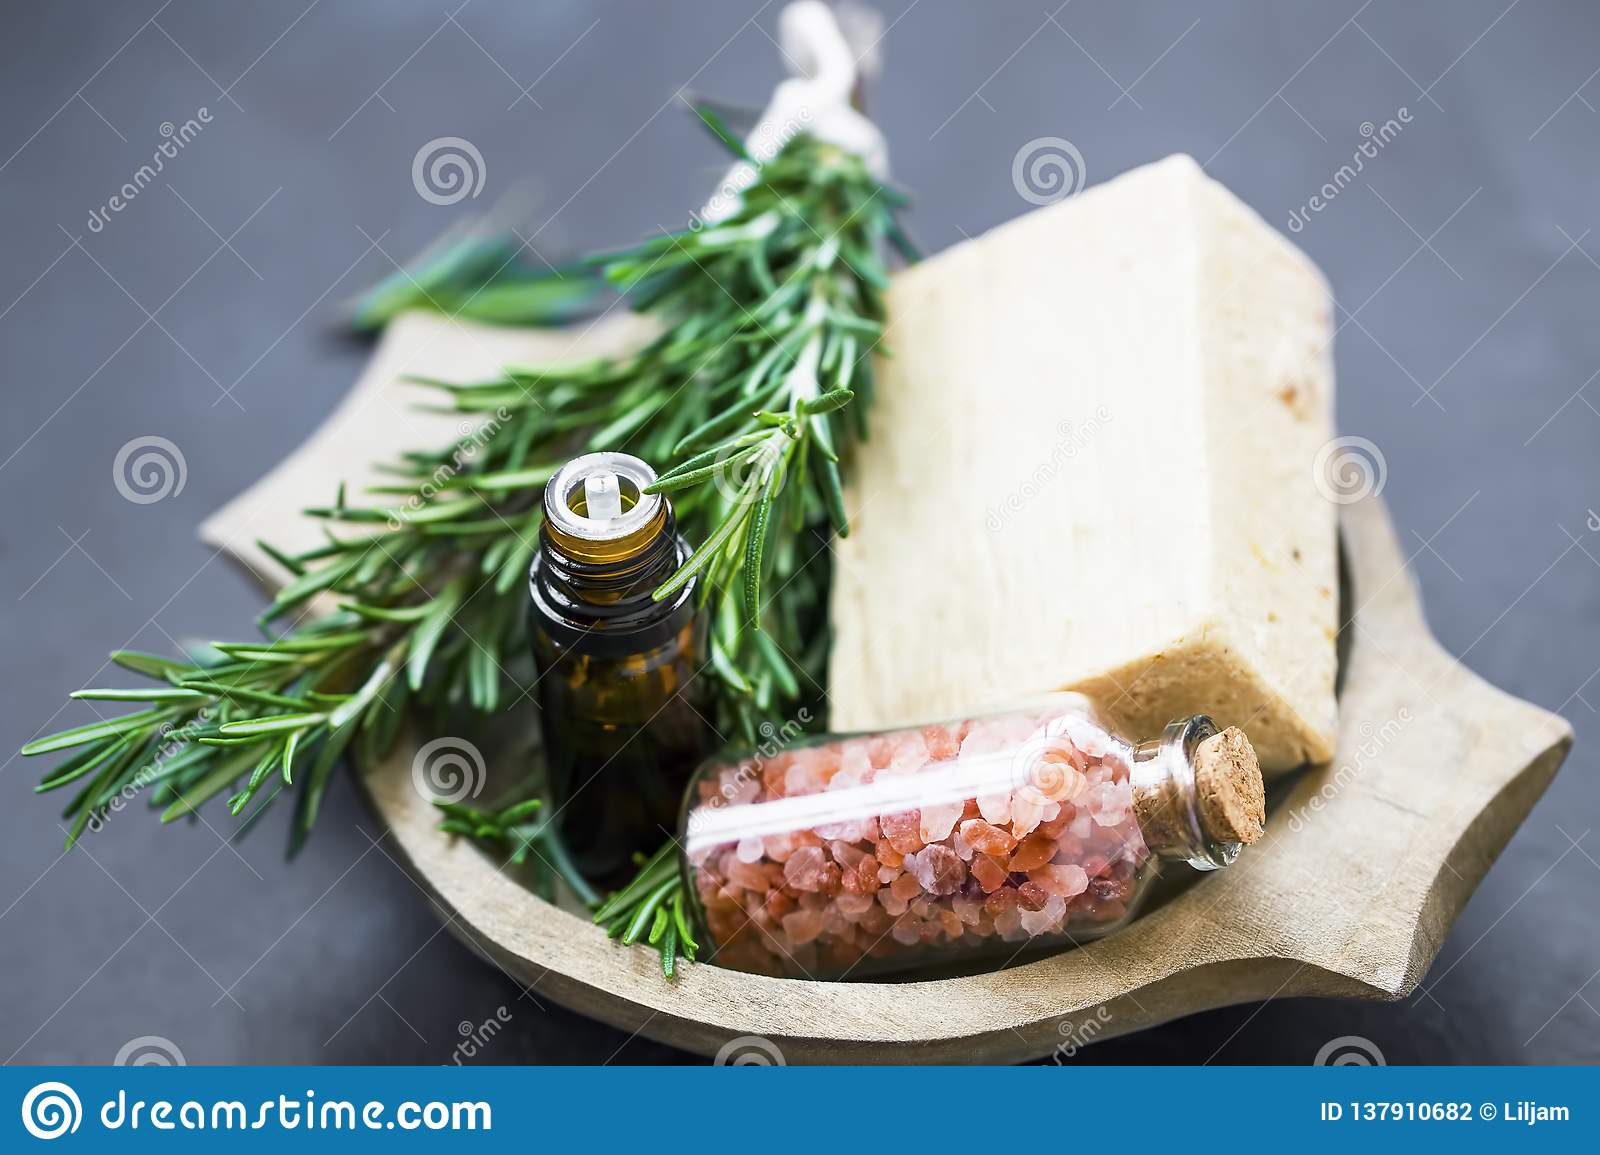 Natural Organic Skincare Ingredients With Rosemary Essential Oil Bath Salt And Natural Soap Stock Photo Image Of Flower Aroma 137910682